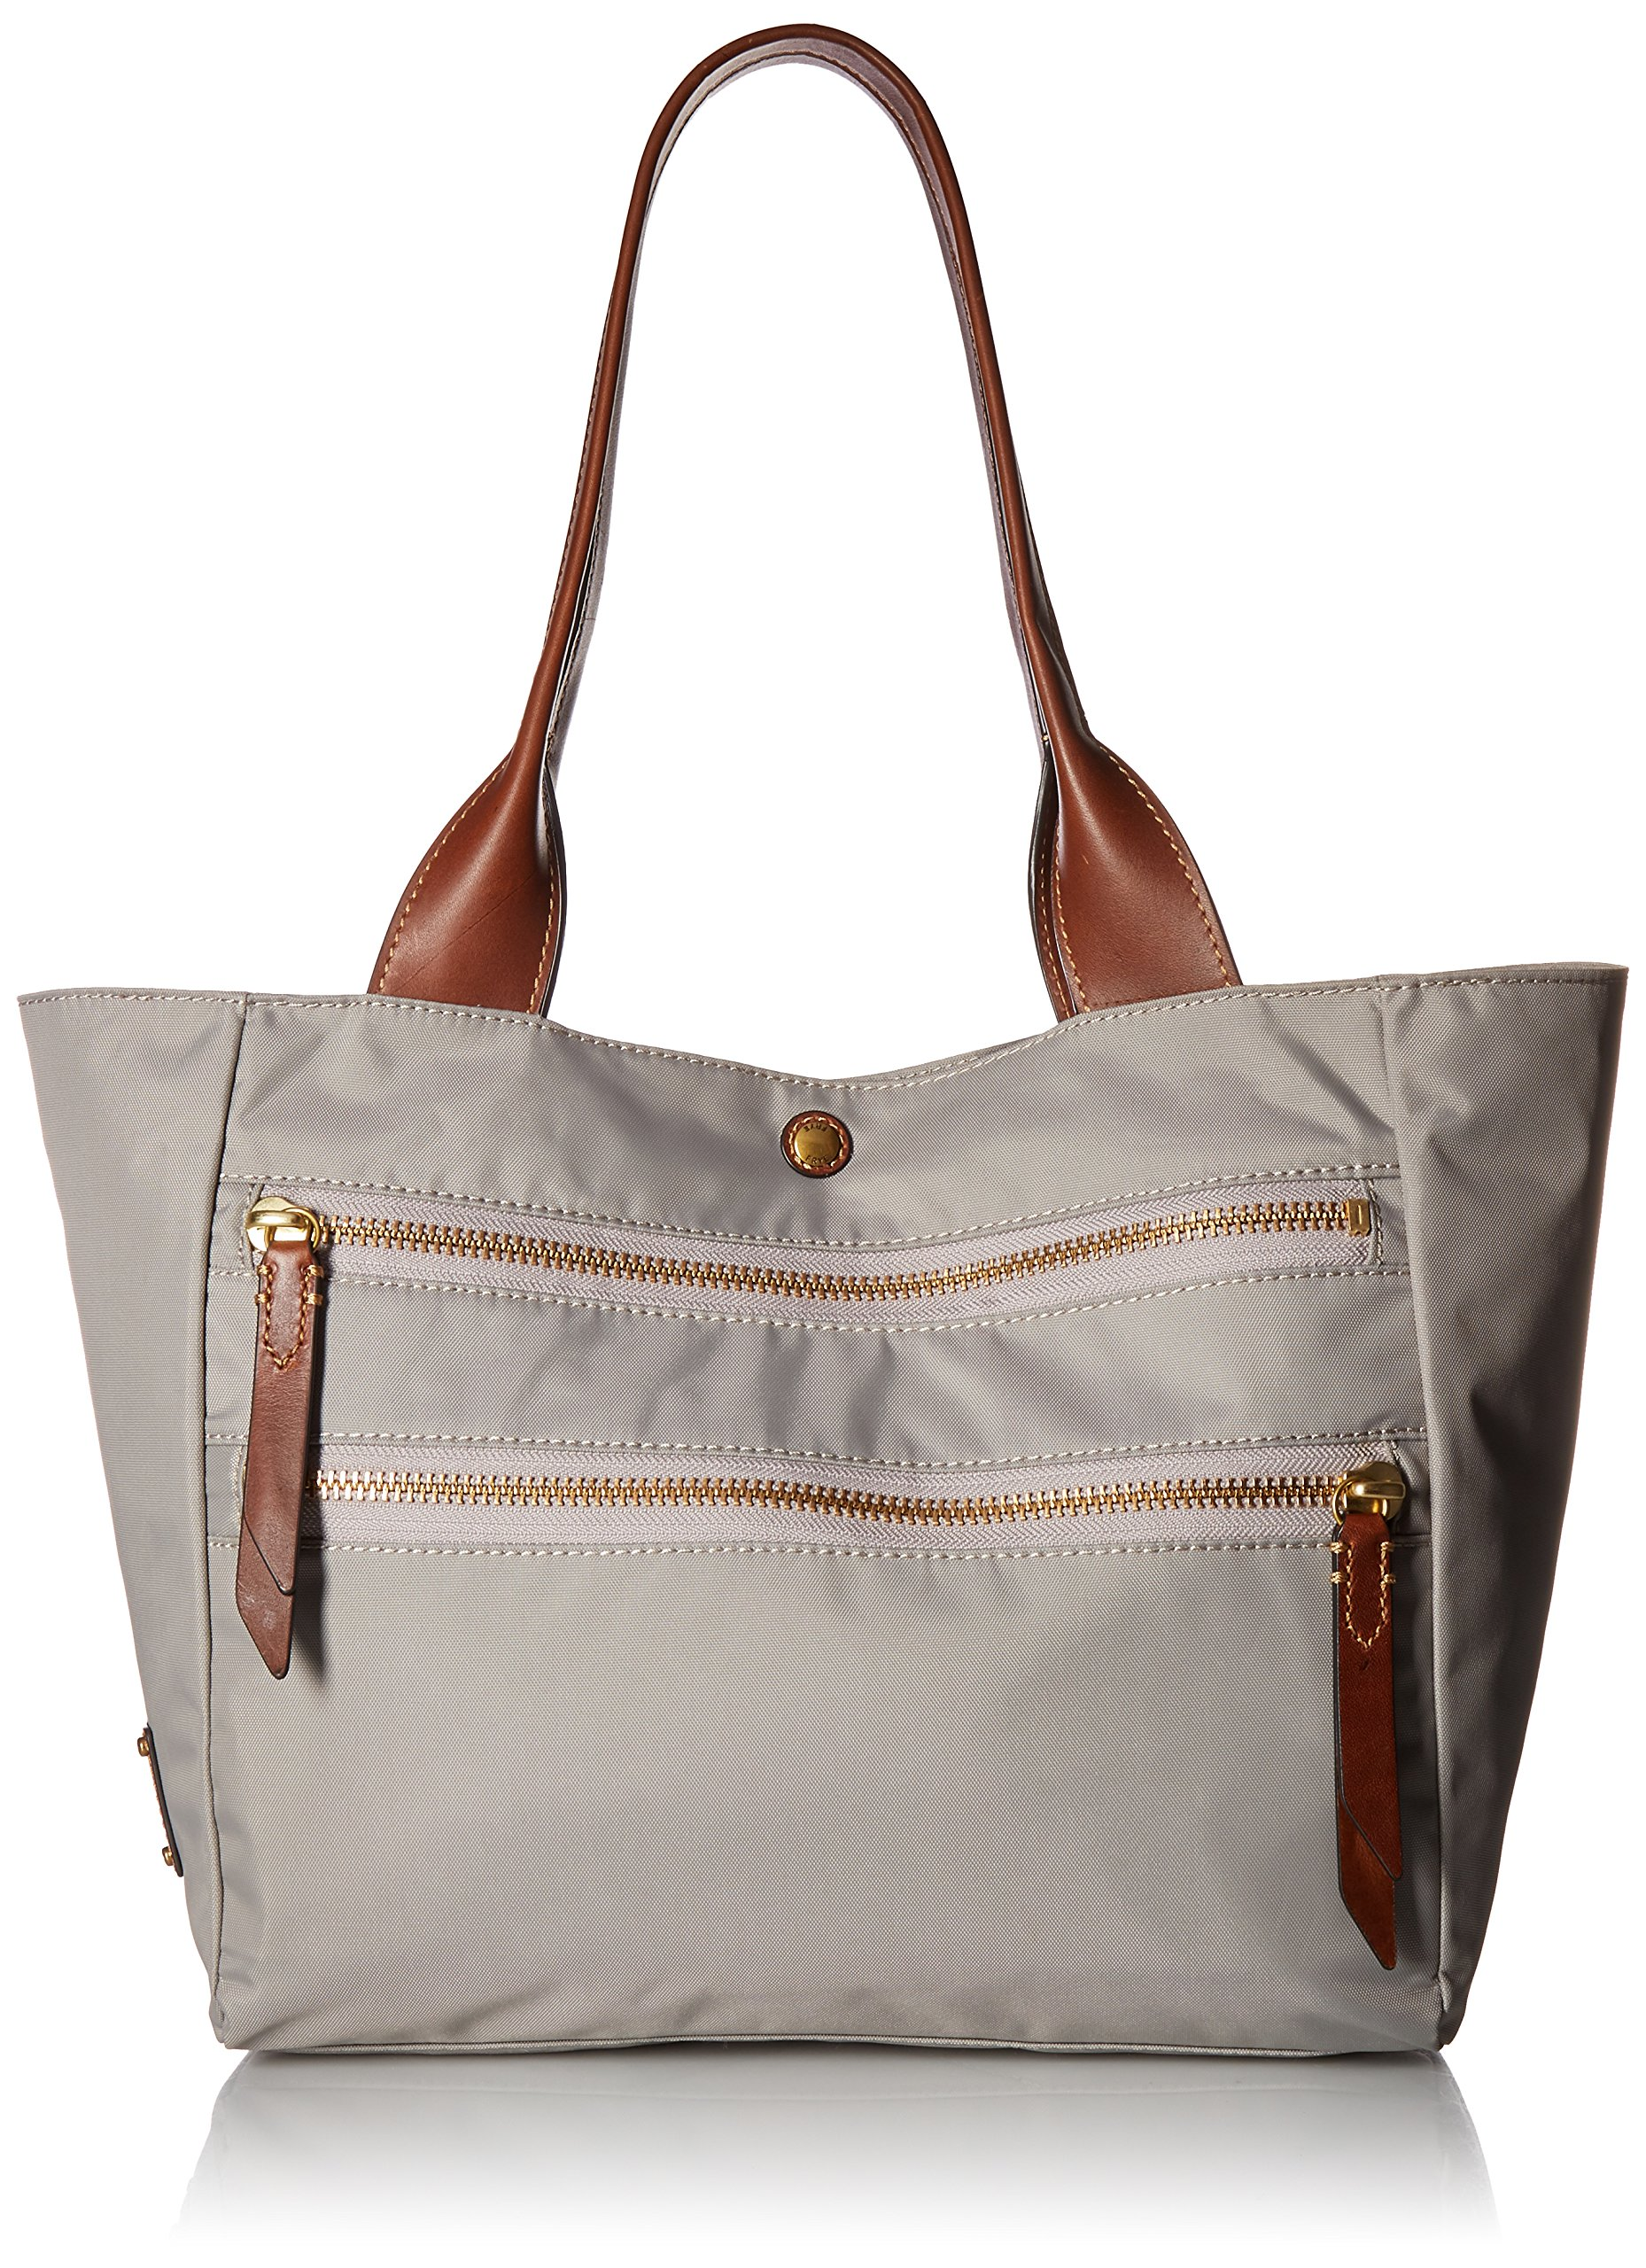 FRYE Ivy Nylon Tote Handbag, Light Grey